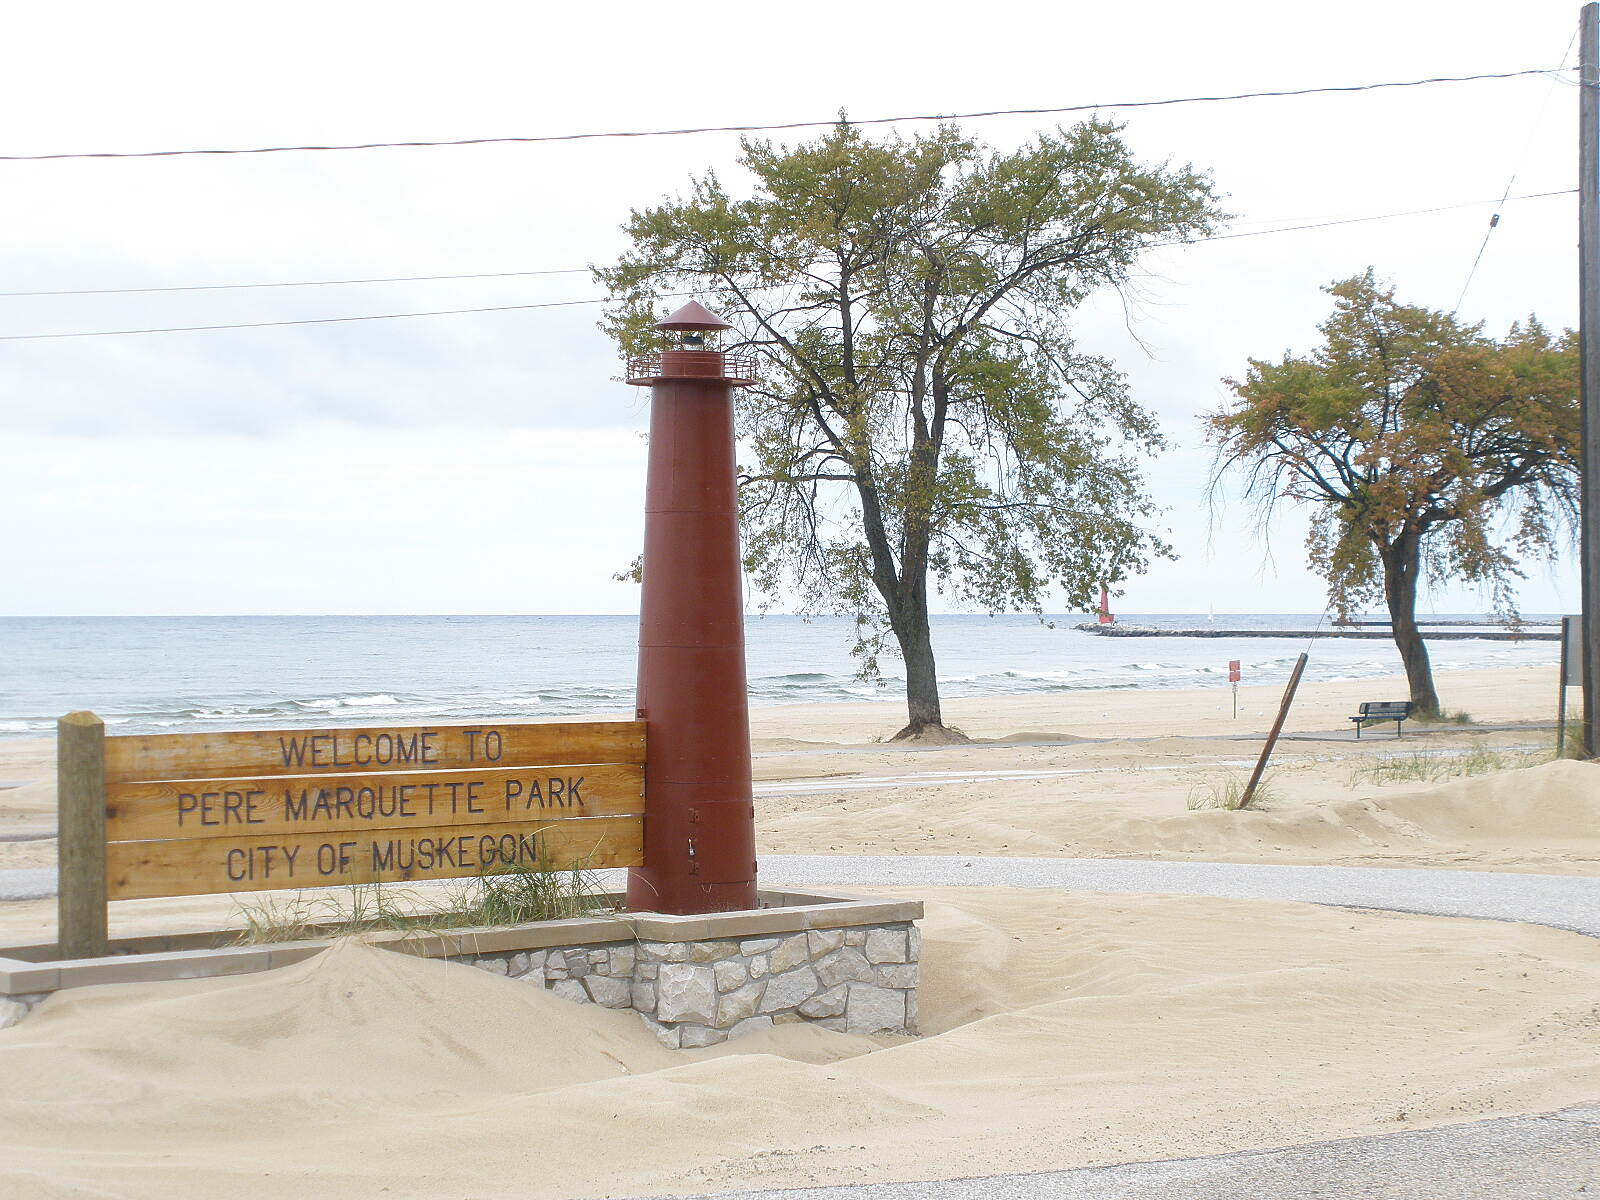 Muskegon Lakeshore Trail Pere Marquette Park at Lake Michigan Rest rooms, concessions, swimming, boat and ship watching.